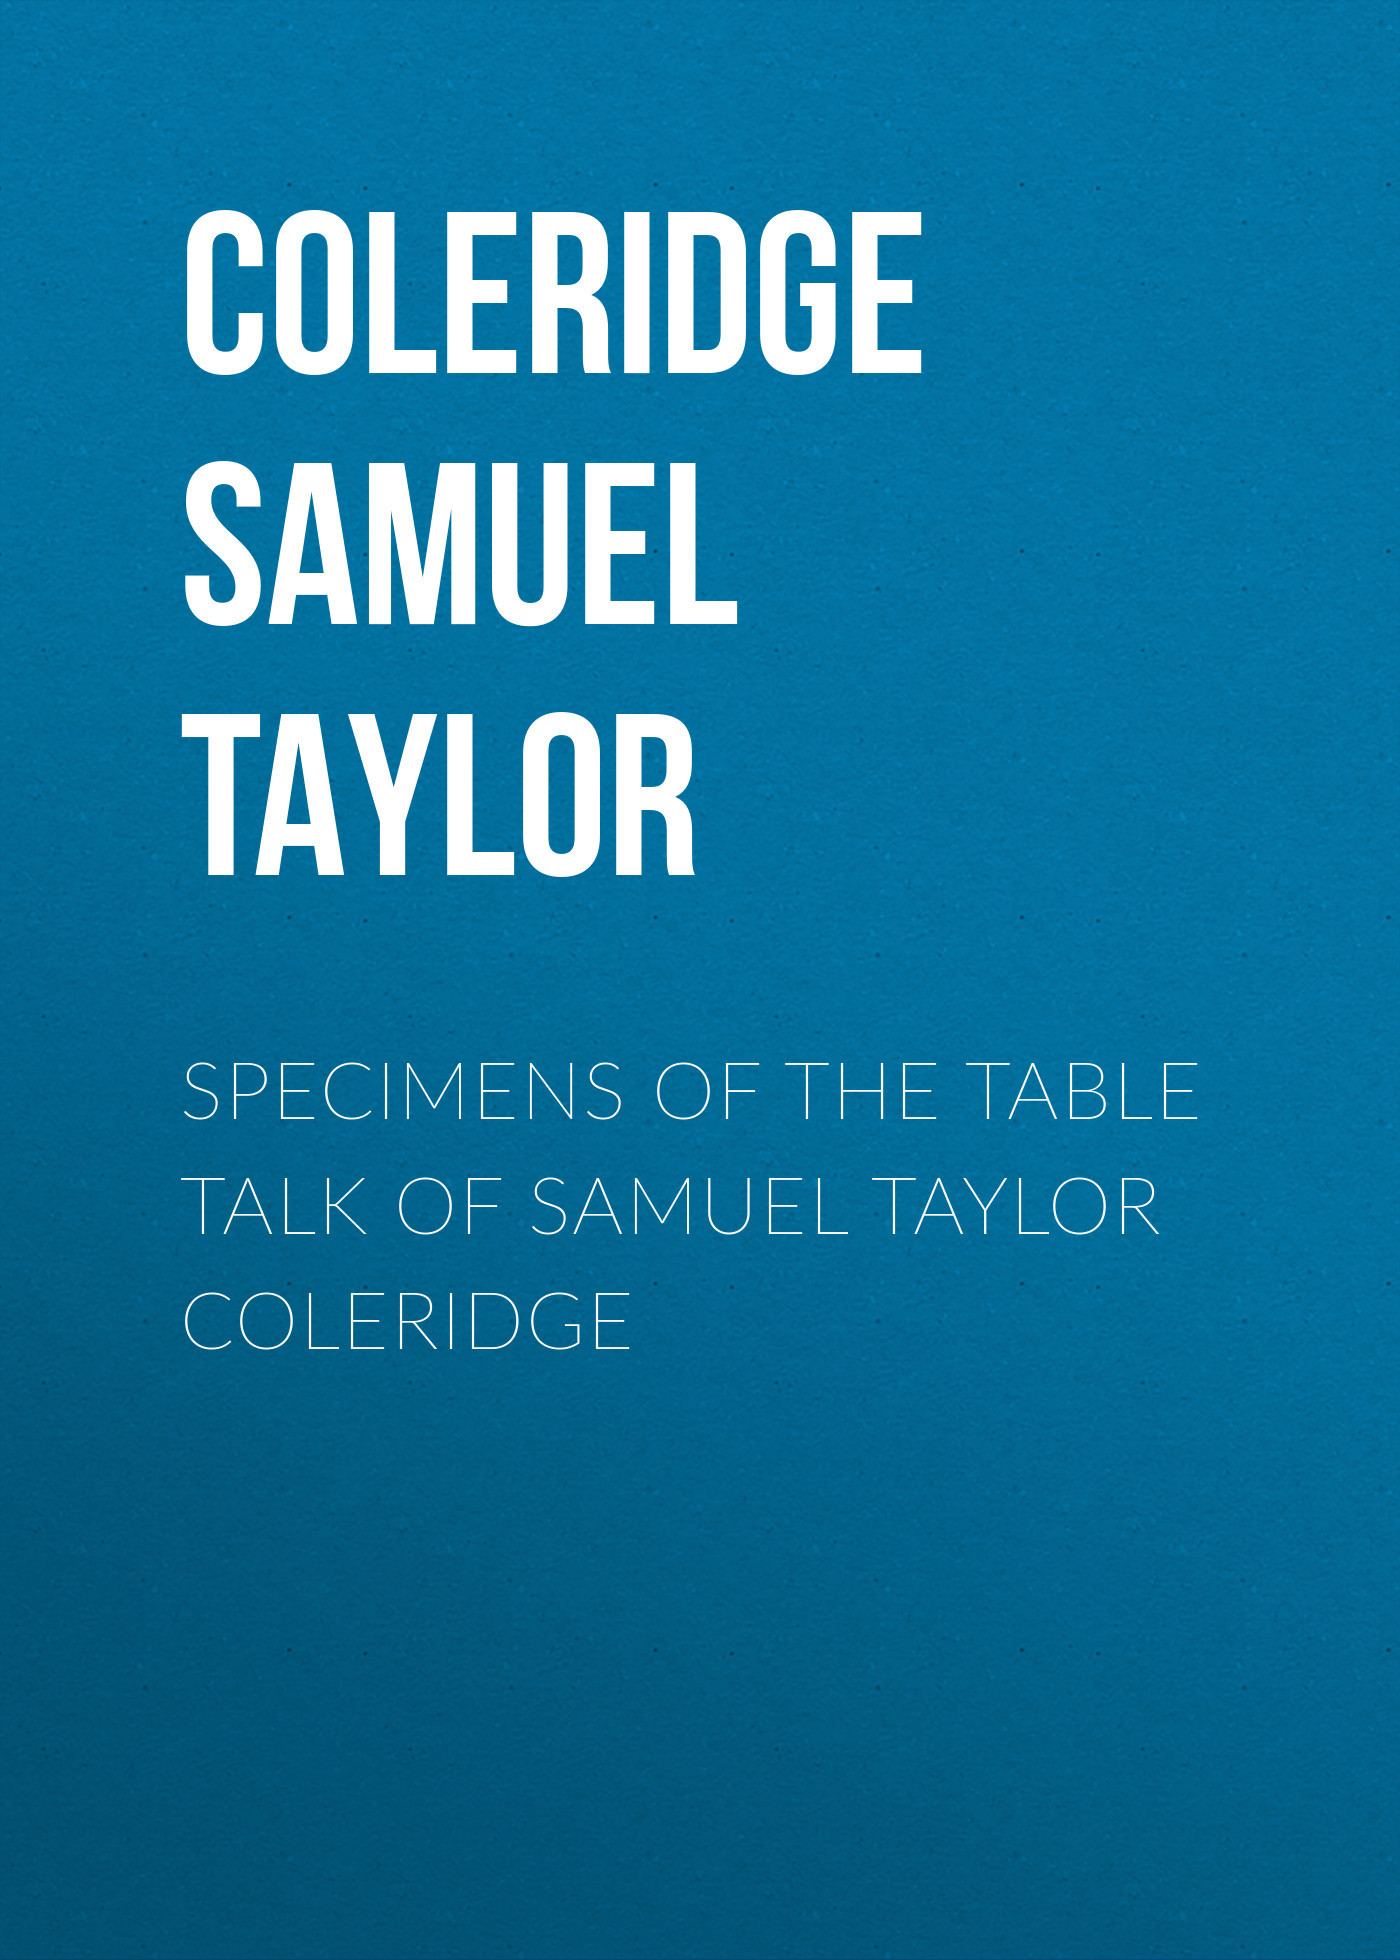 Coleridge Samuel Taylor Specimens of the Table Talk of Samuel Taylor Coleridge sir samuel samuel sir vize pli o